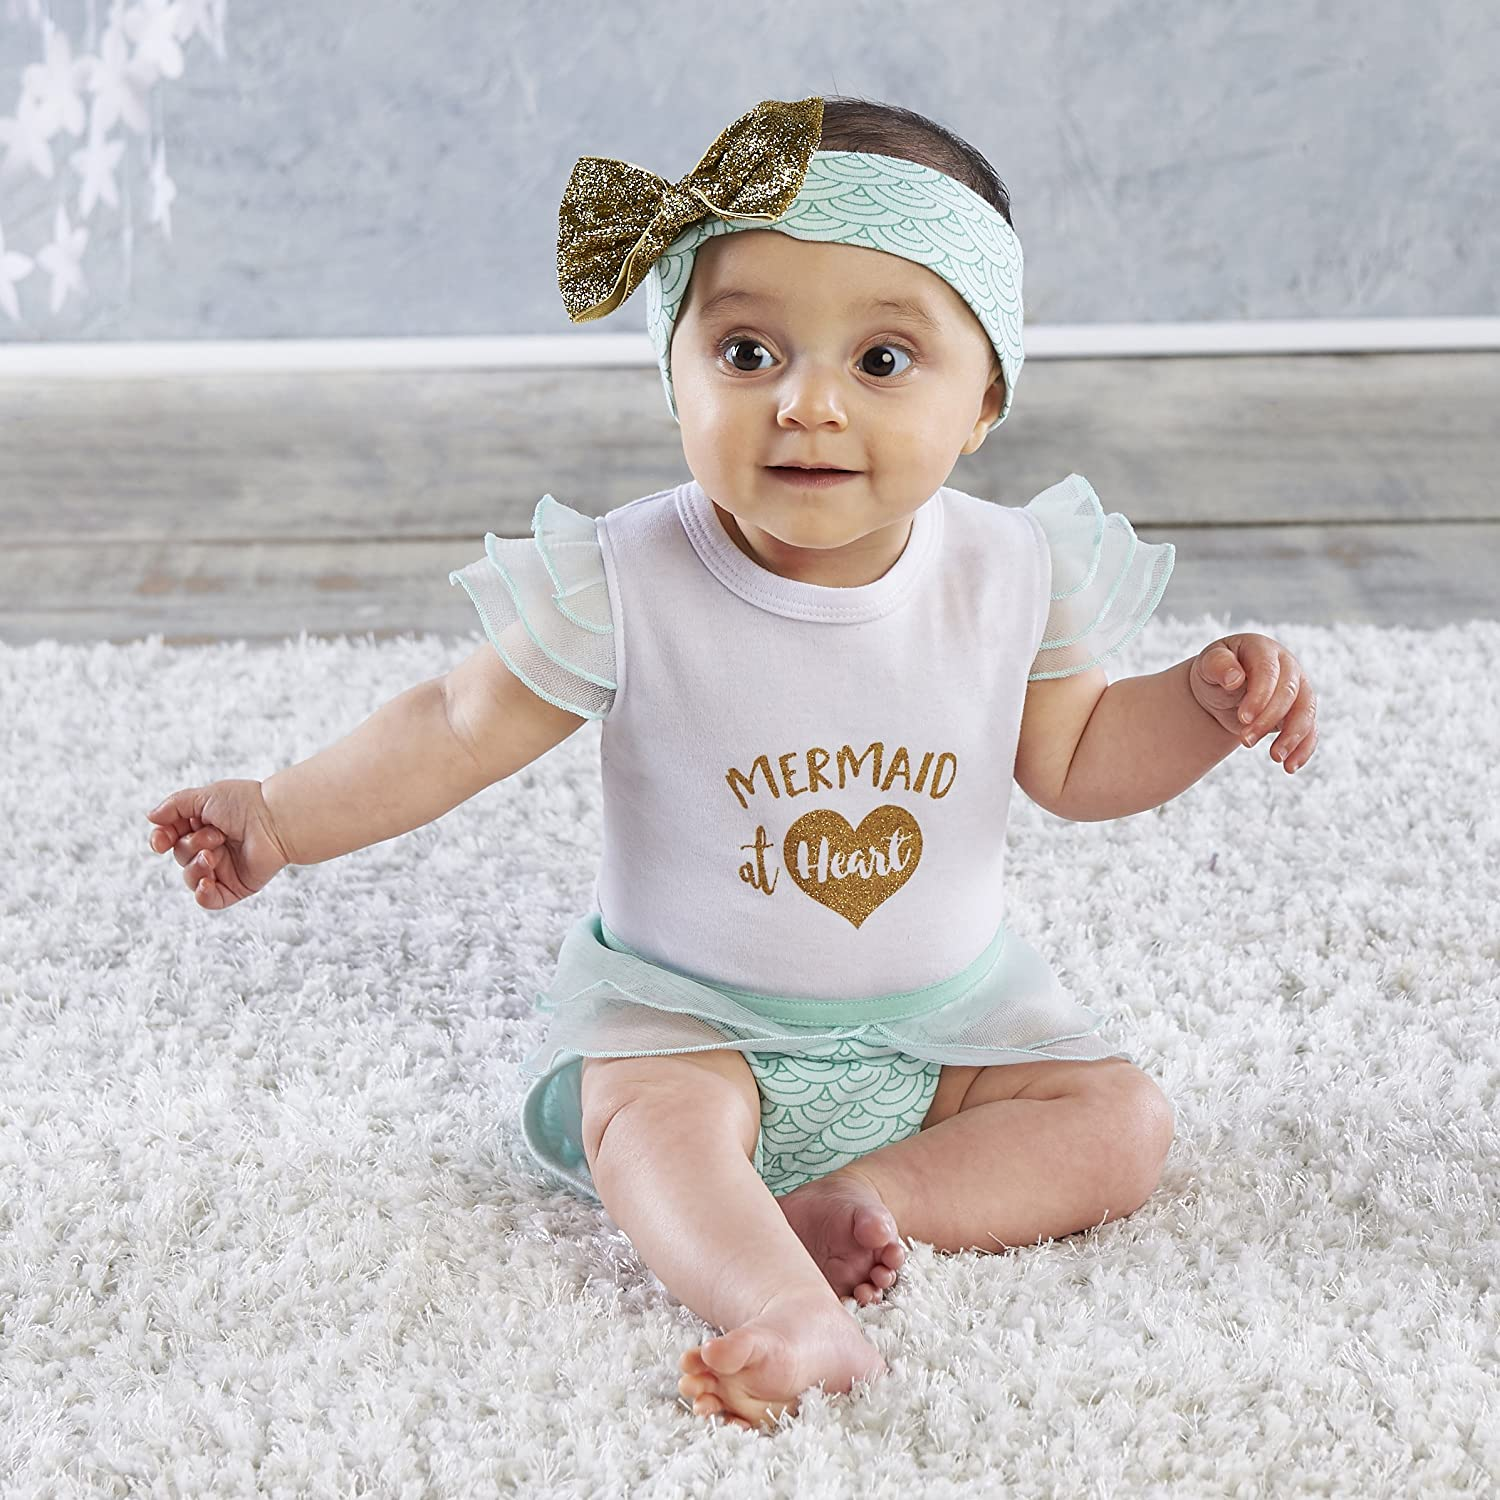 Baby Aspen, My First Mermaid Outfit with Headband, Baby Onesie, 0-6 Months